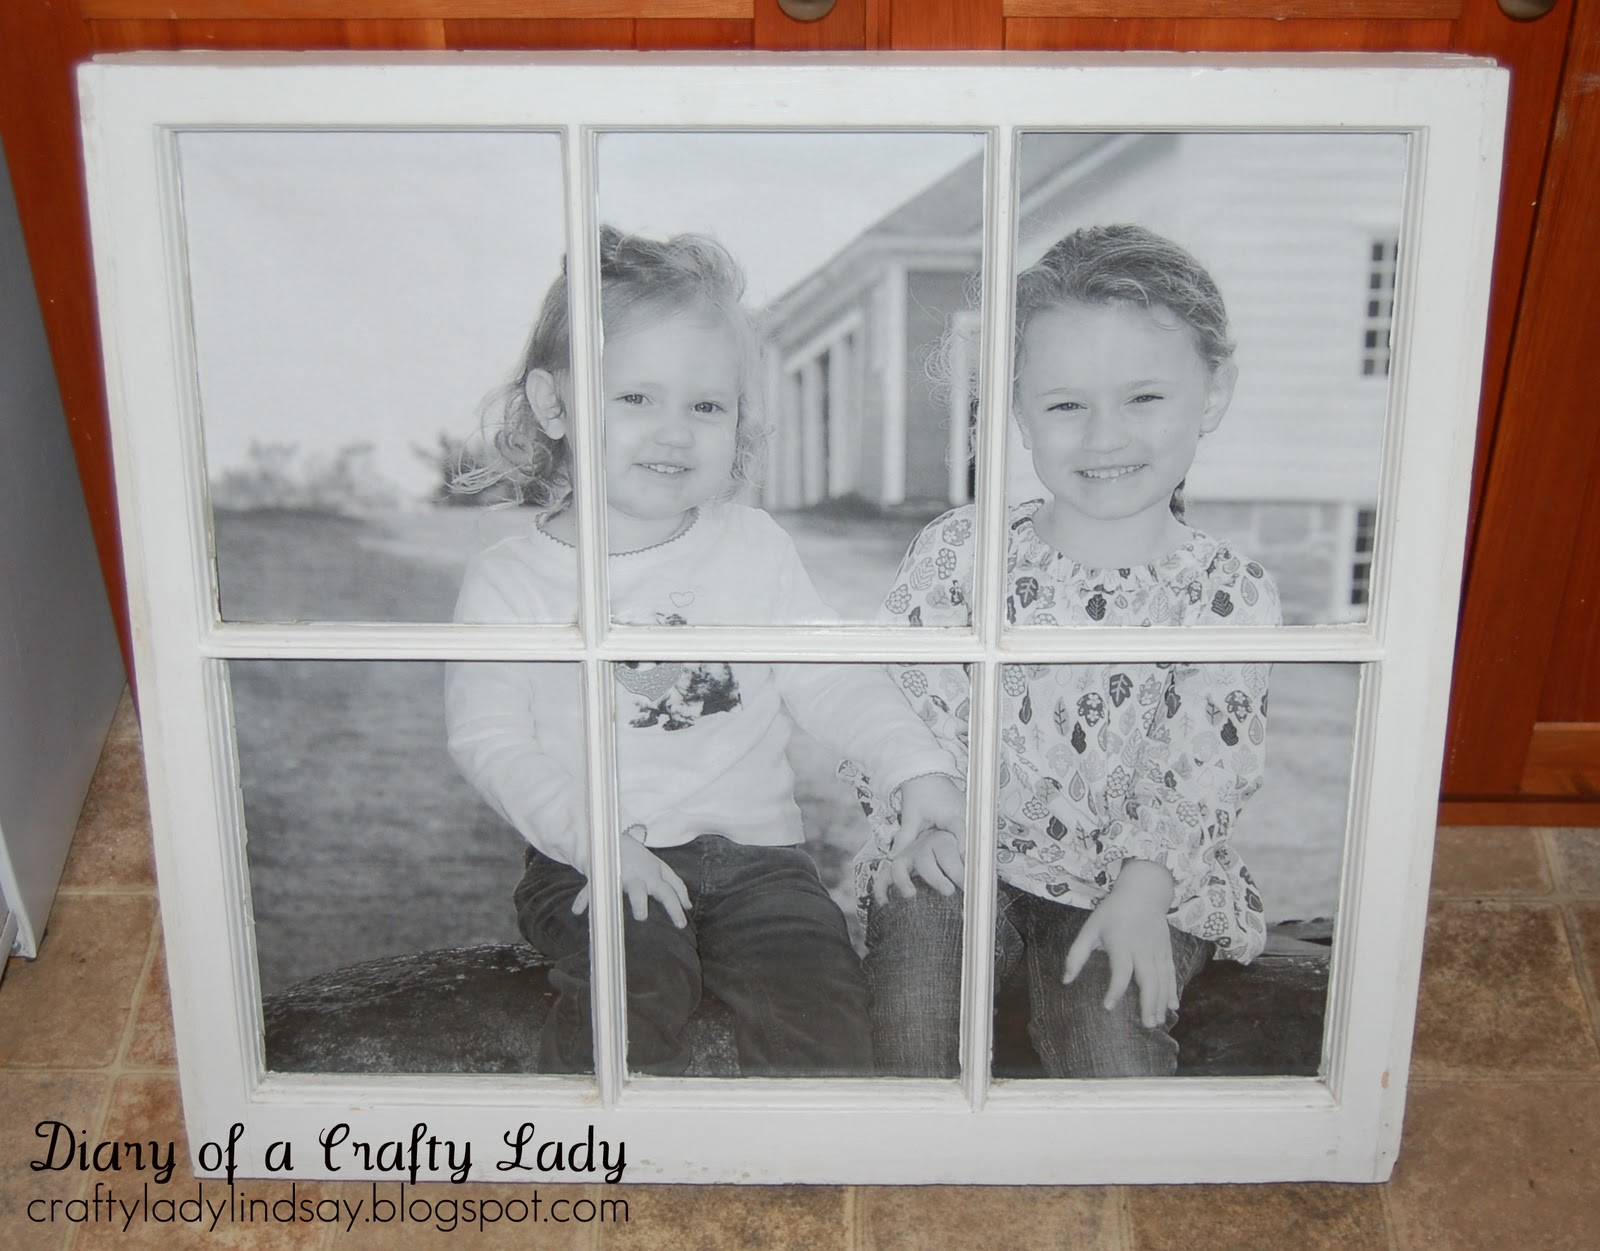 diary of a crafty lady old window big picture - Window Picture Frame Ideas